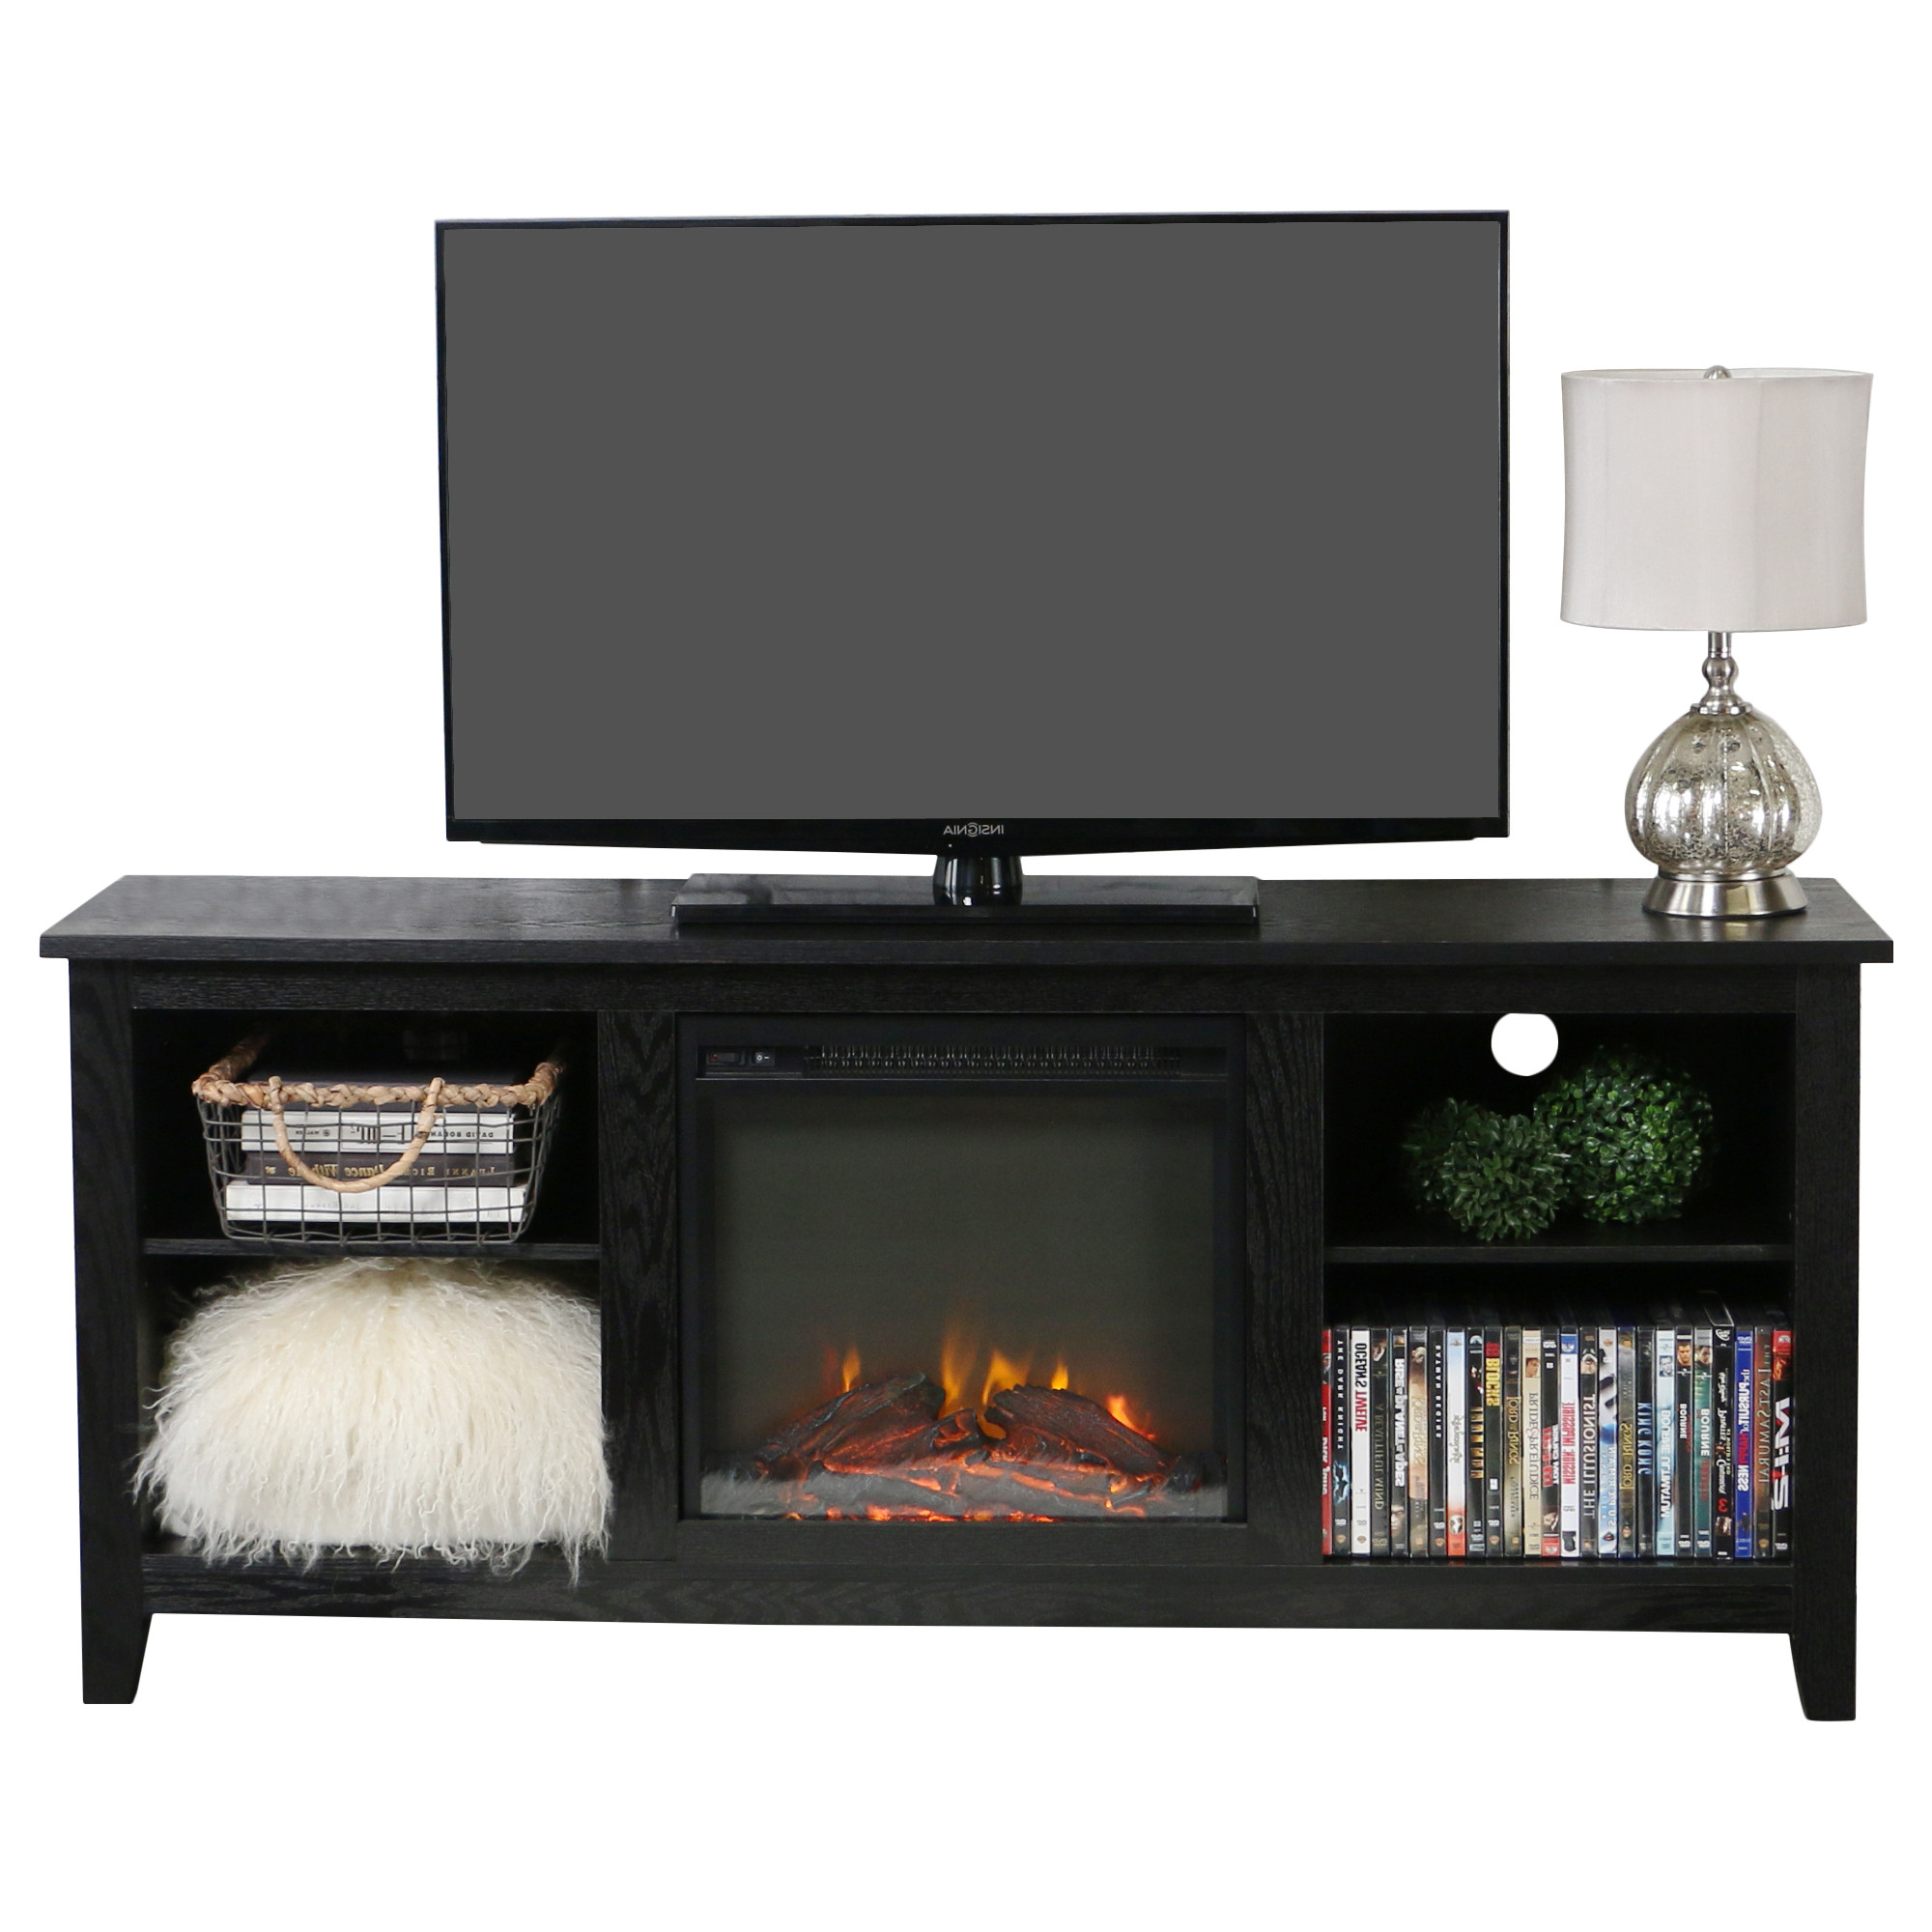 Current Bjs Tv Stands Throughout Tv Stand With Fireplace Bjs: Best Ideas About Black Fireplace On (View 10 of 20)